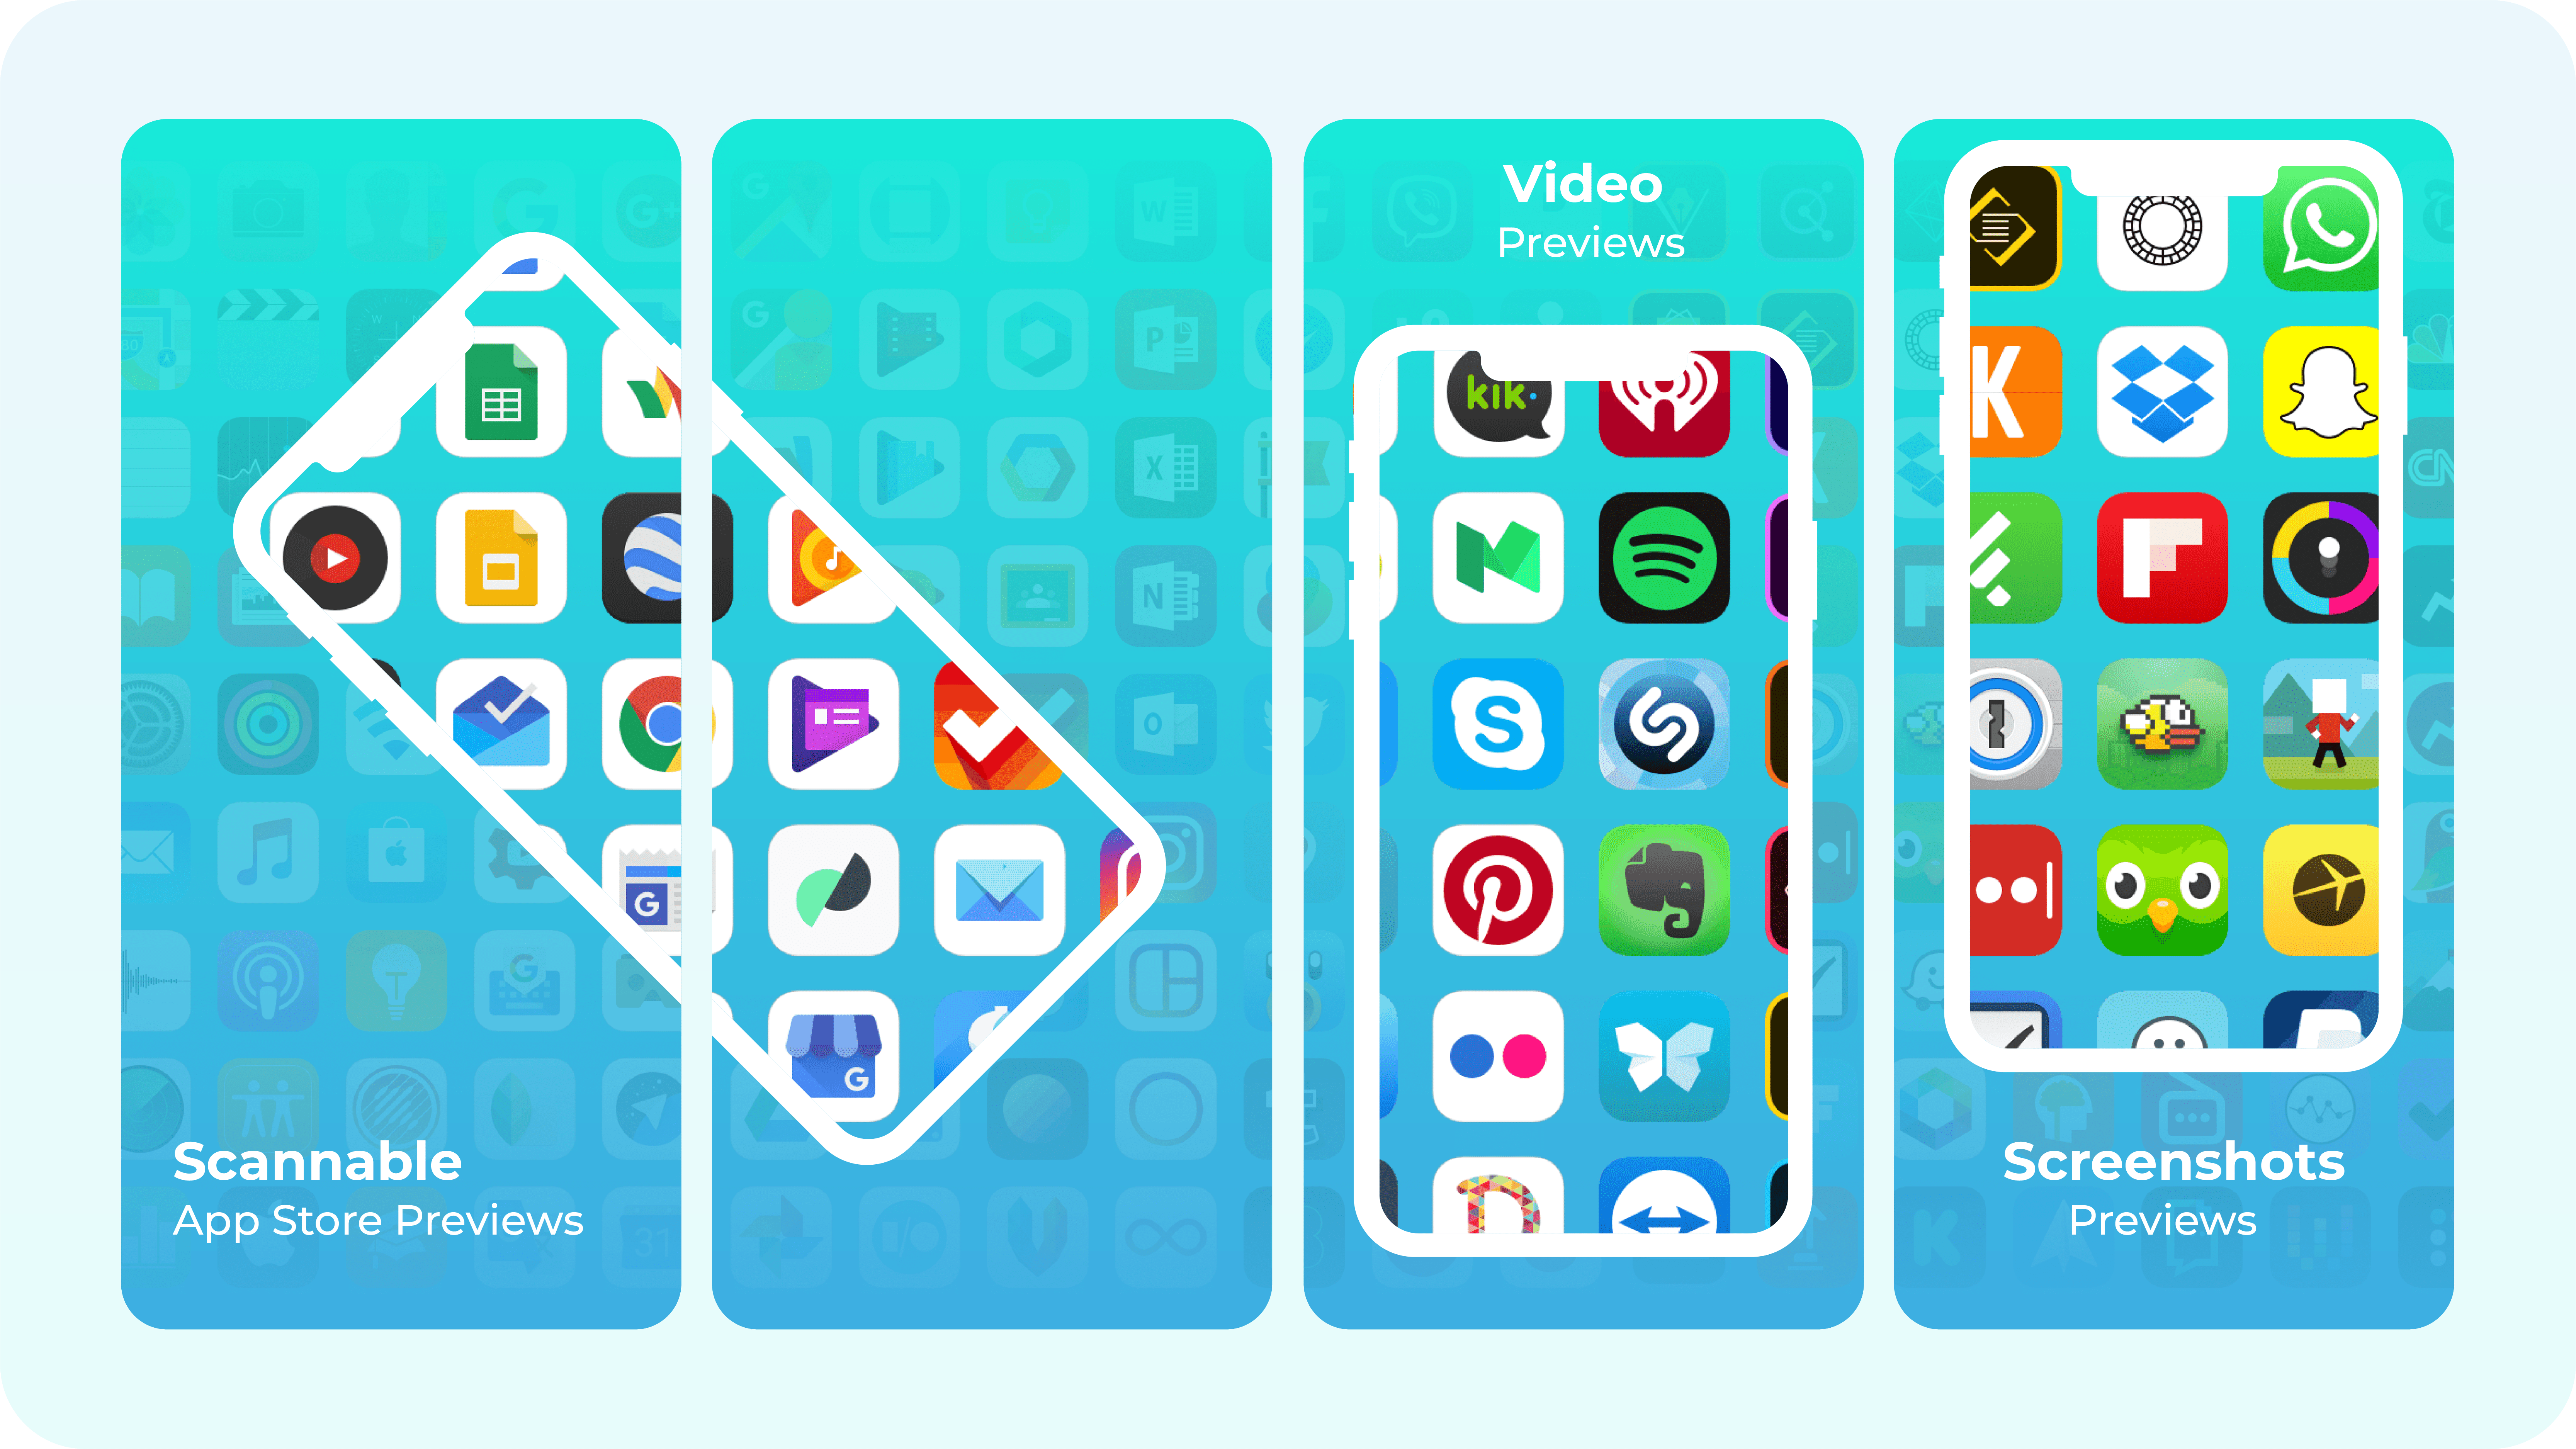 App Store preview mockups for screenshots and videos